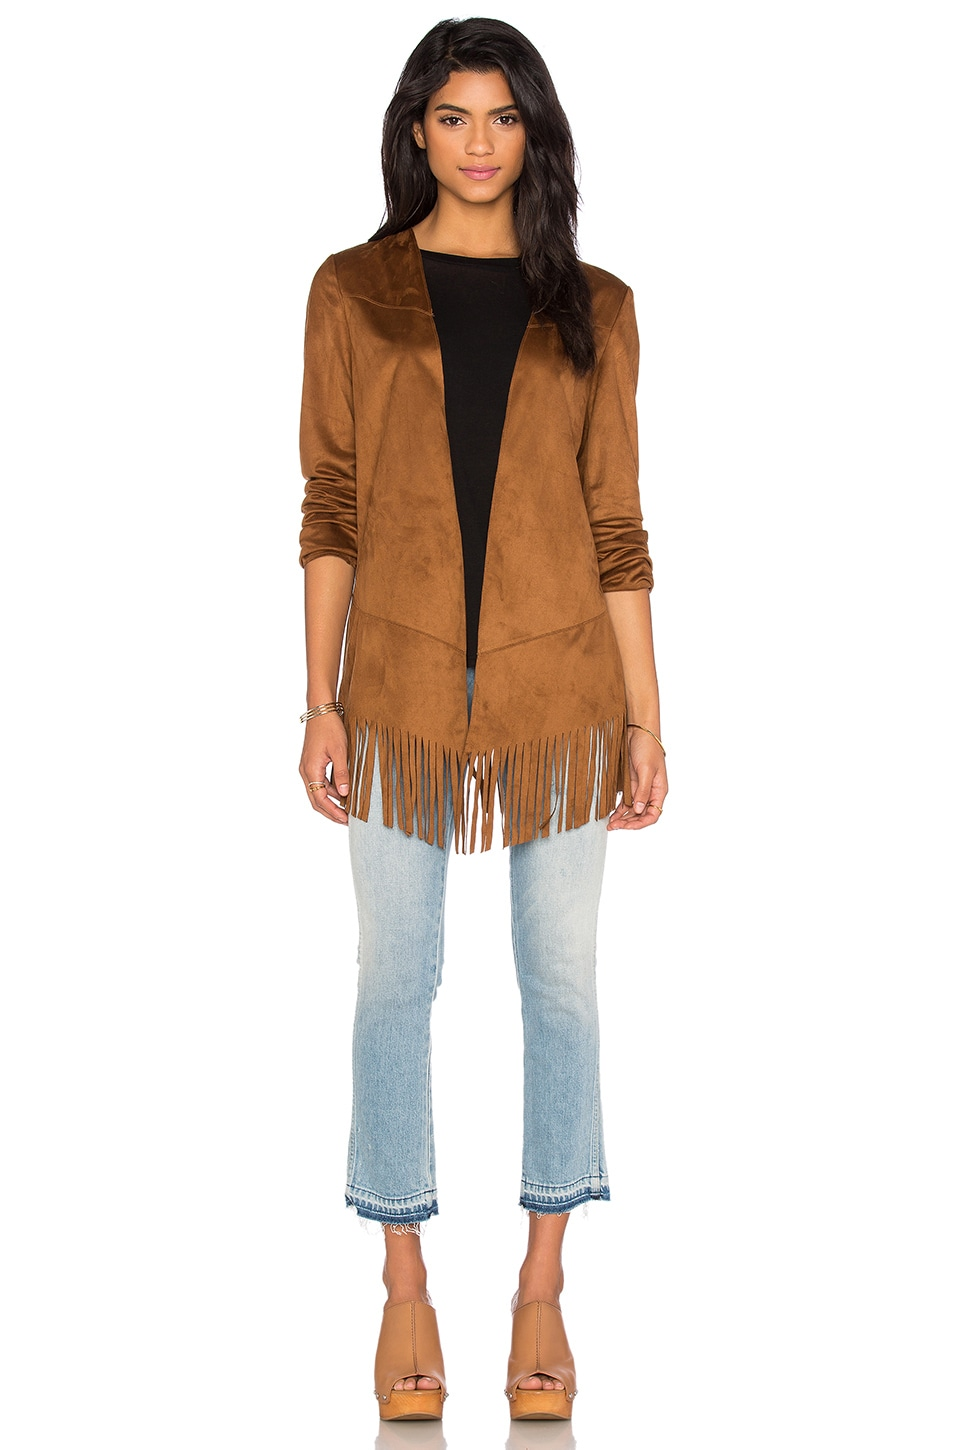 BCBGeneration Fringe Jacket in Cognac